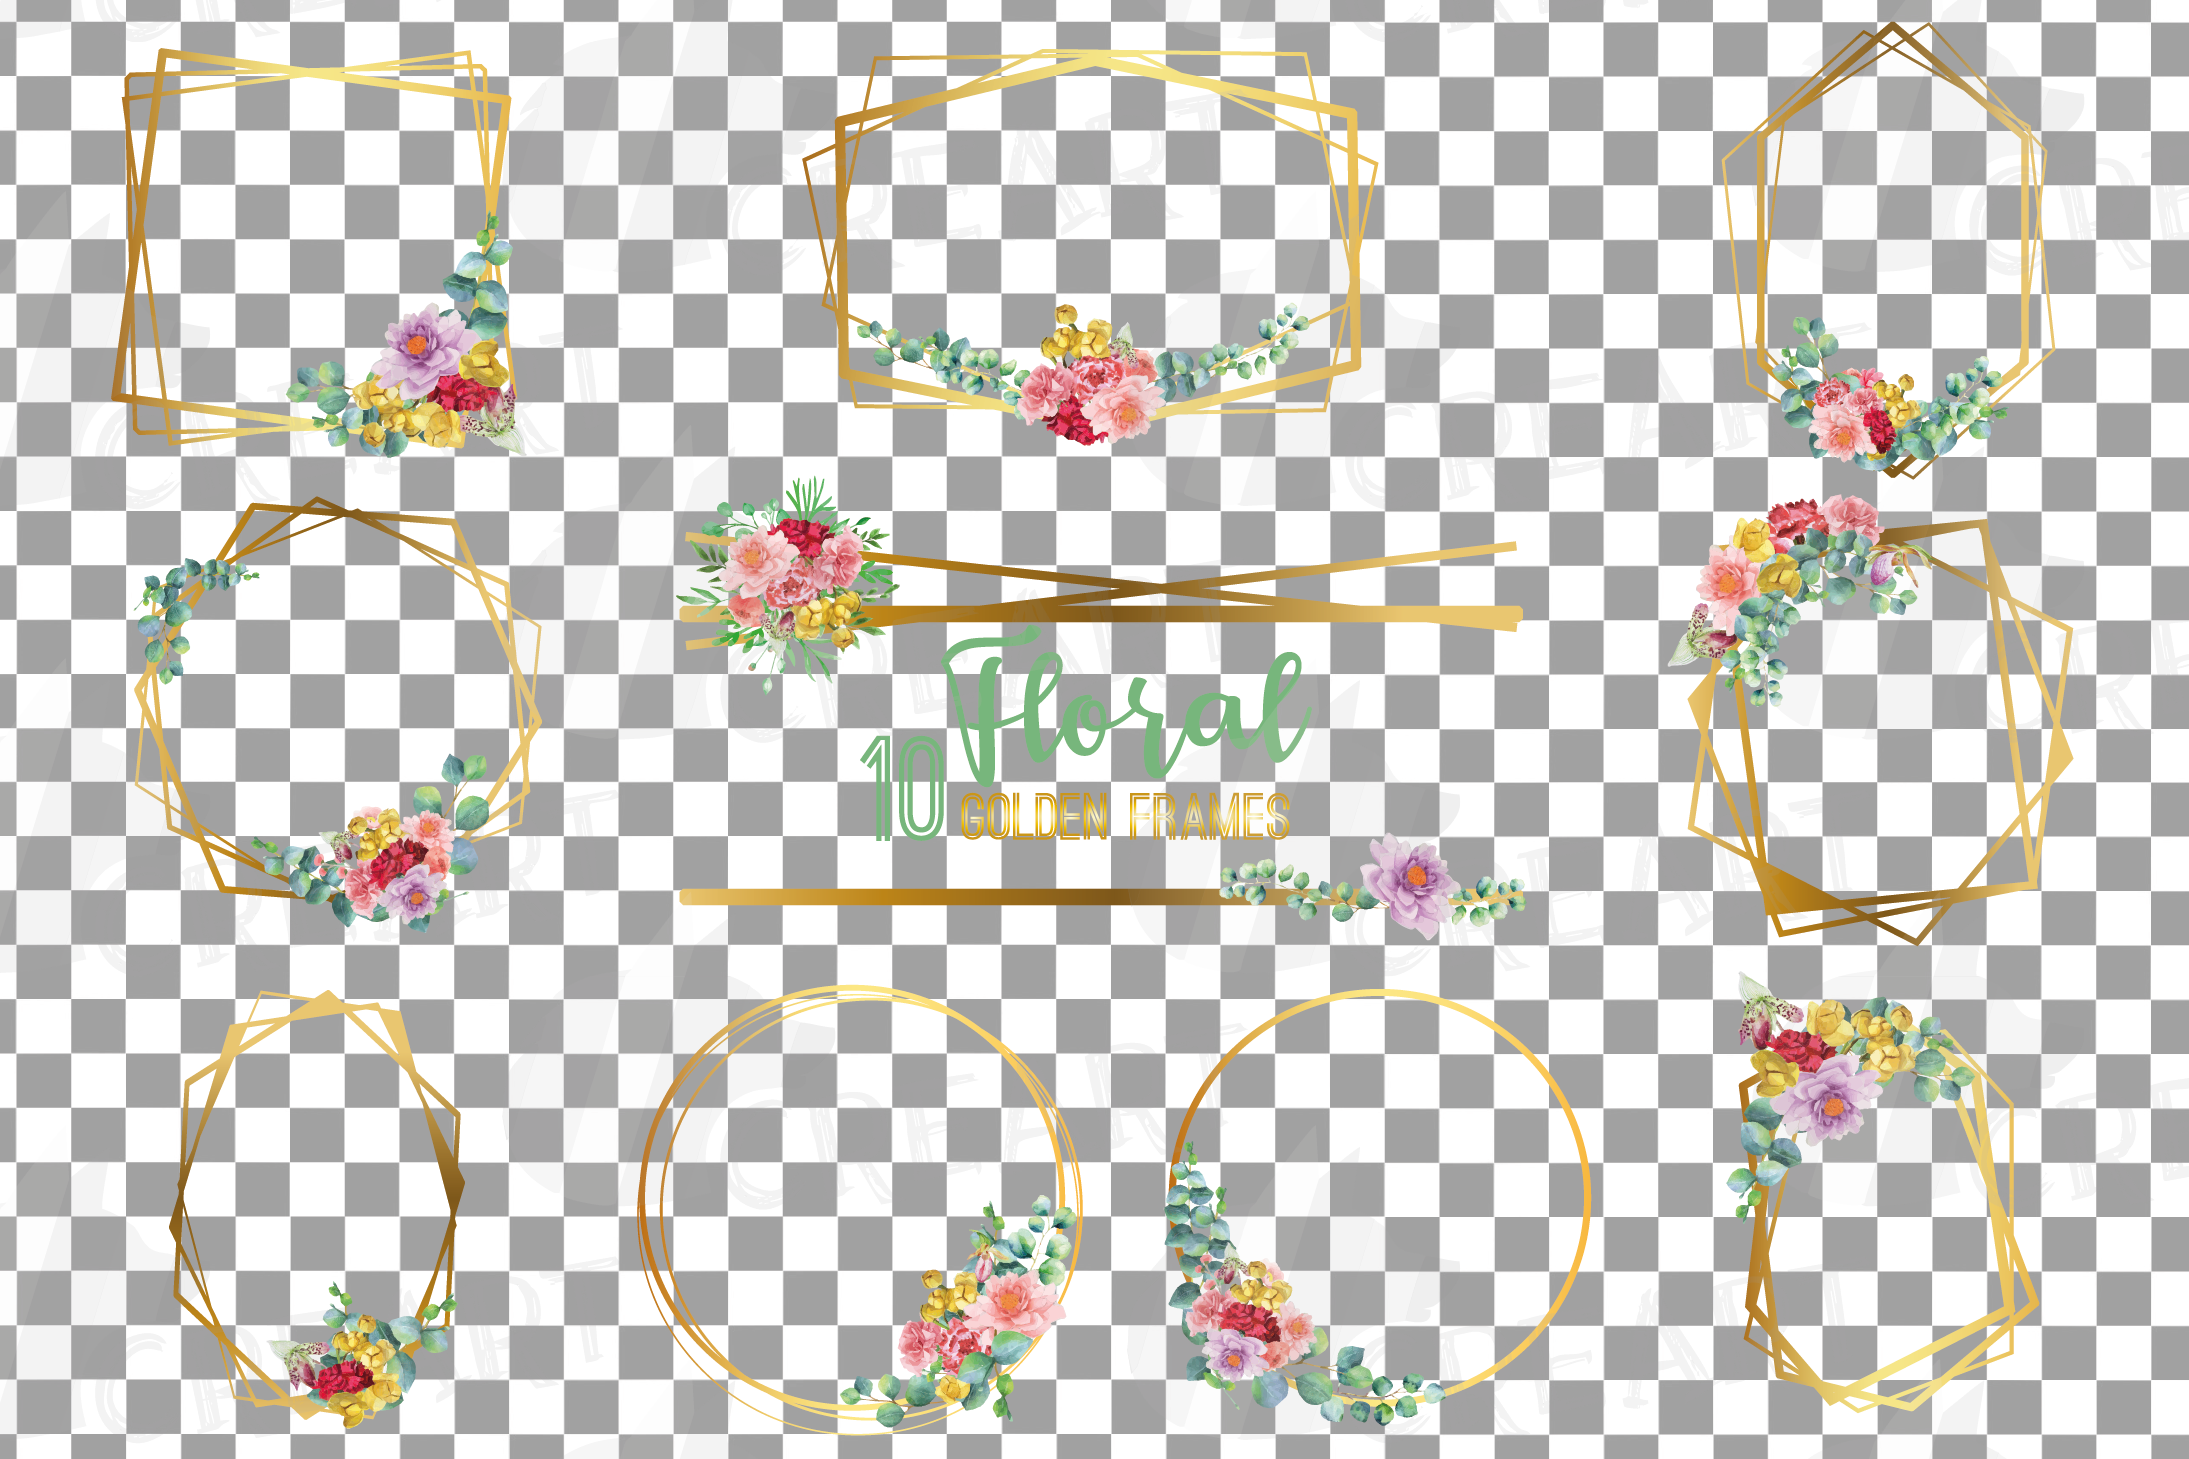 Watercolor floral golden frames and borders clip art pack example image 2